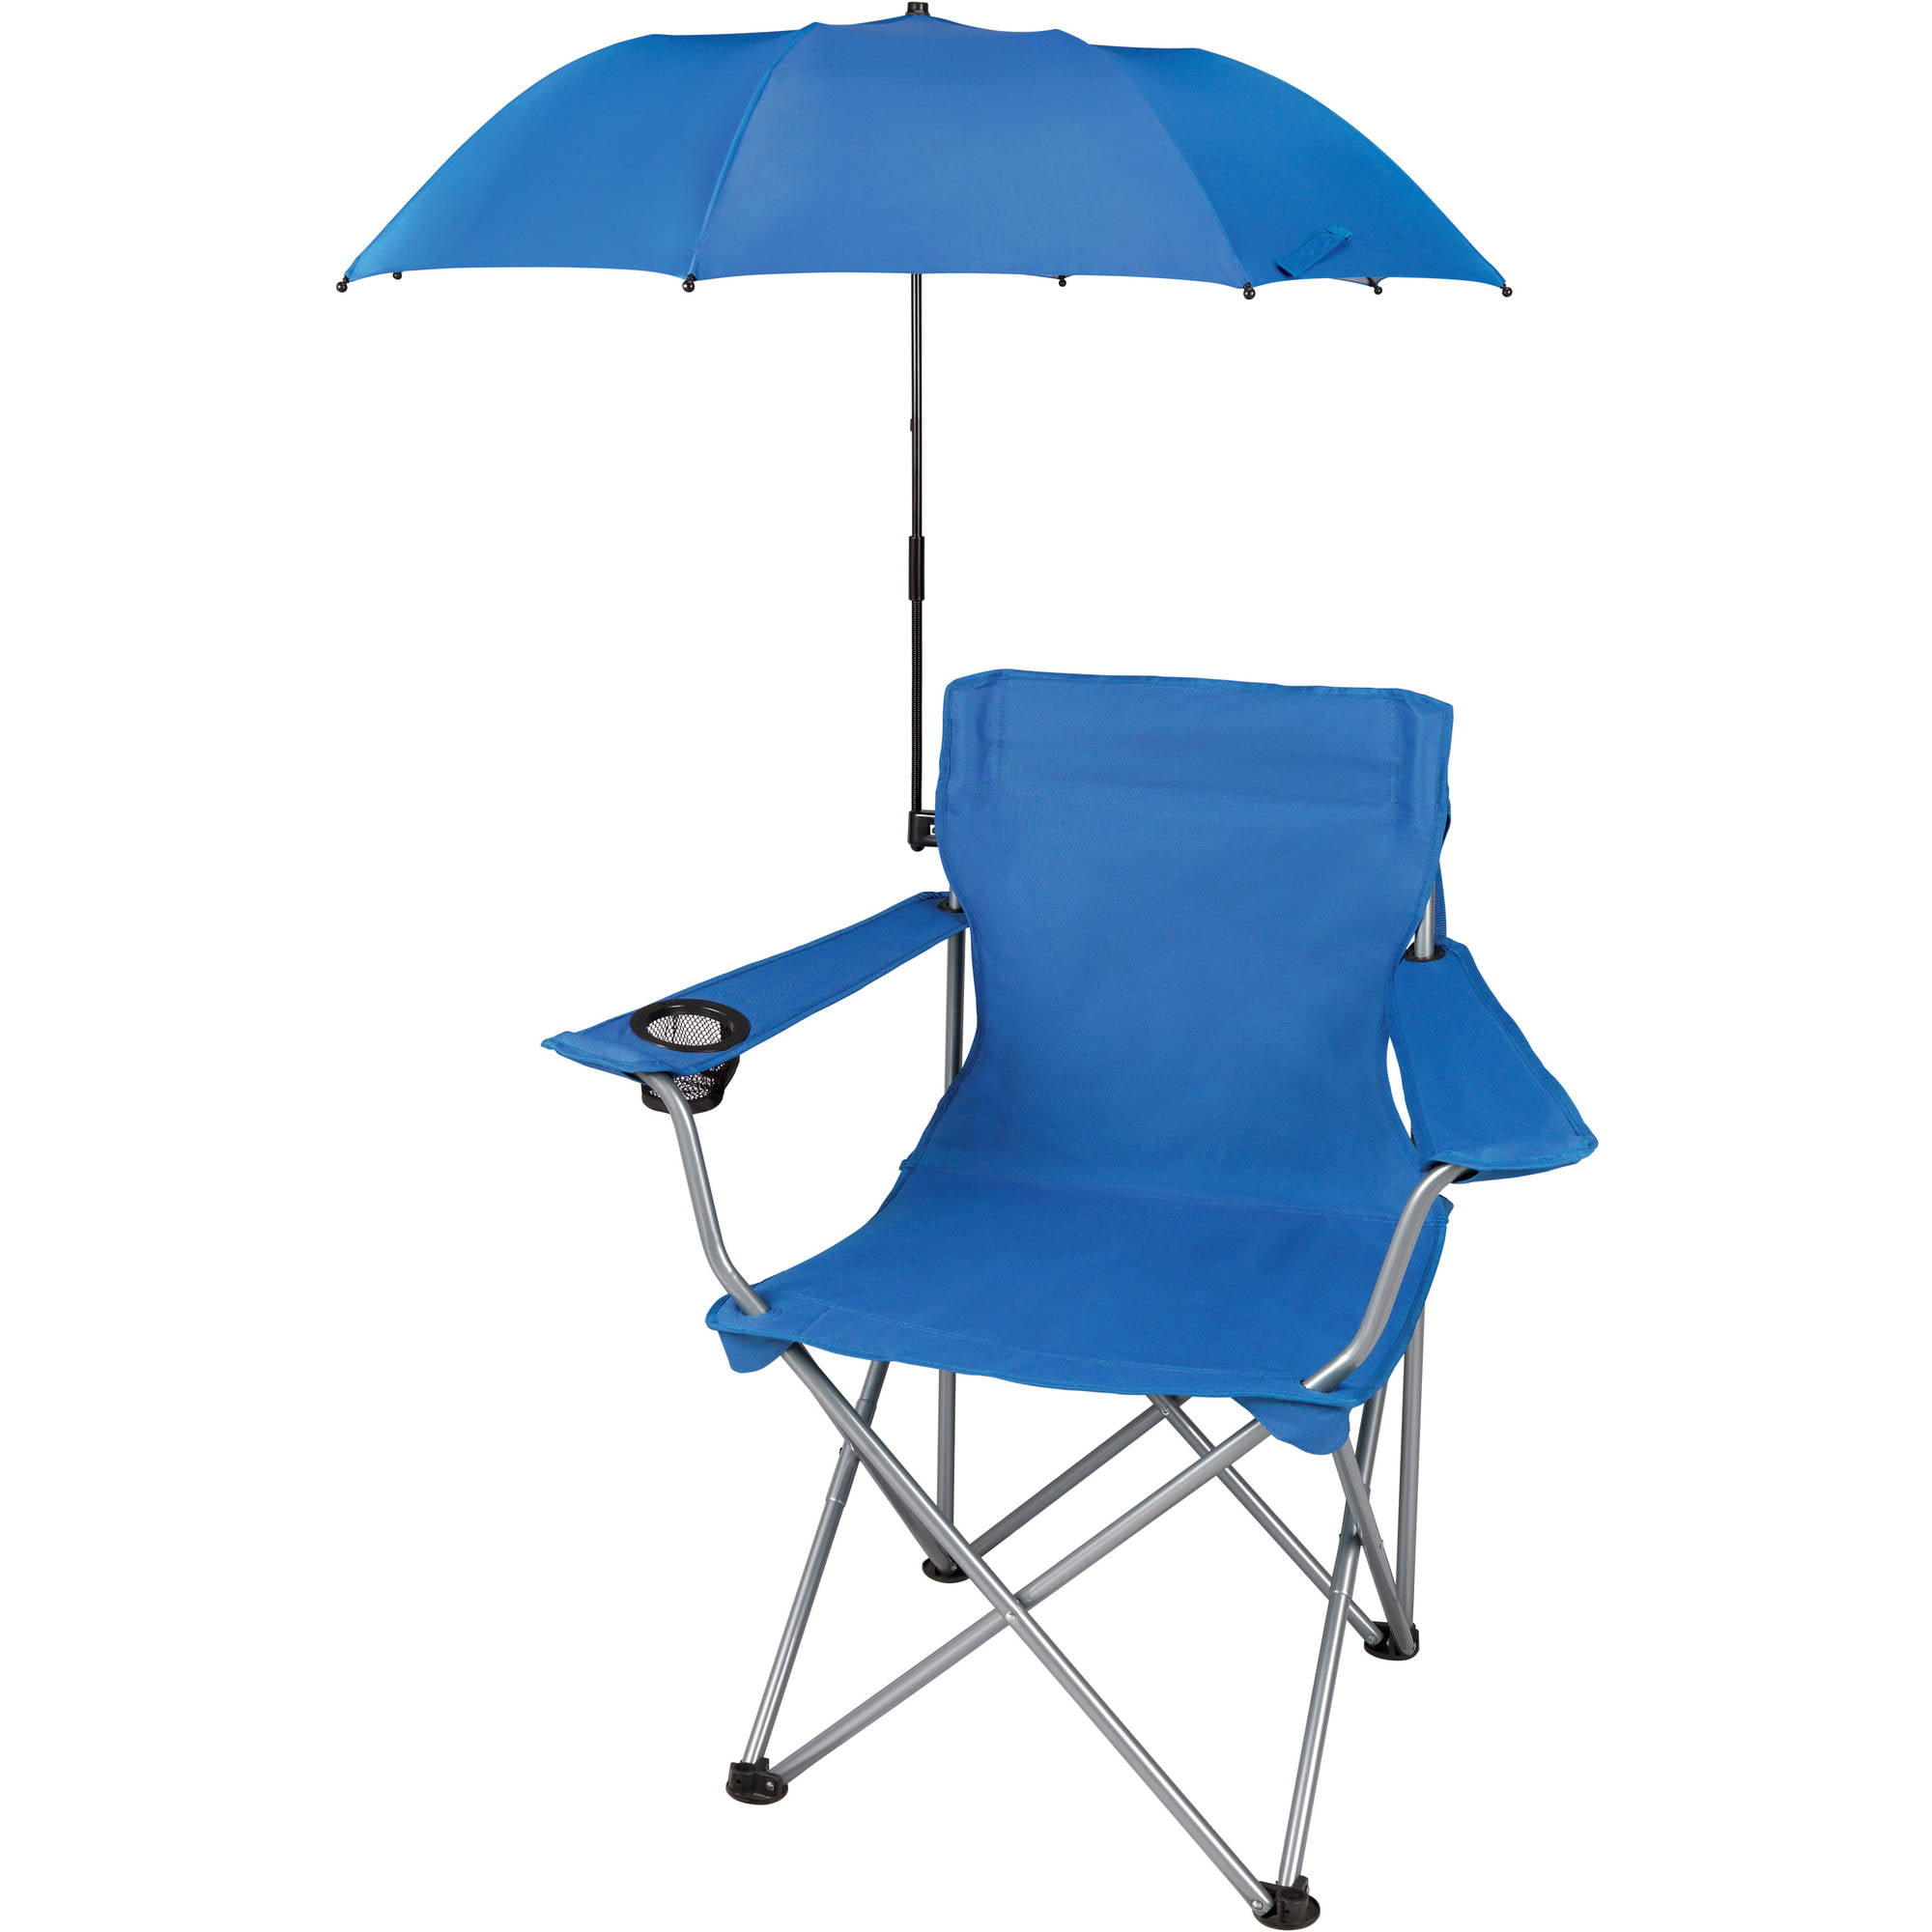 Ozark Trail Outdoor Chair Umbrella Attachment Sold Separately